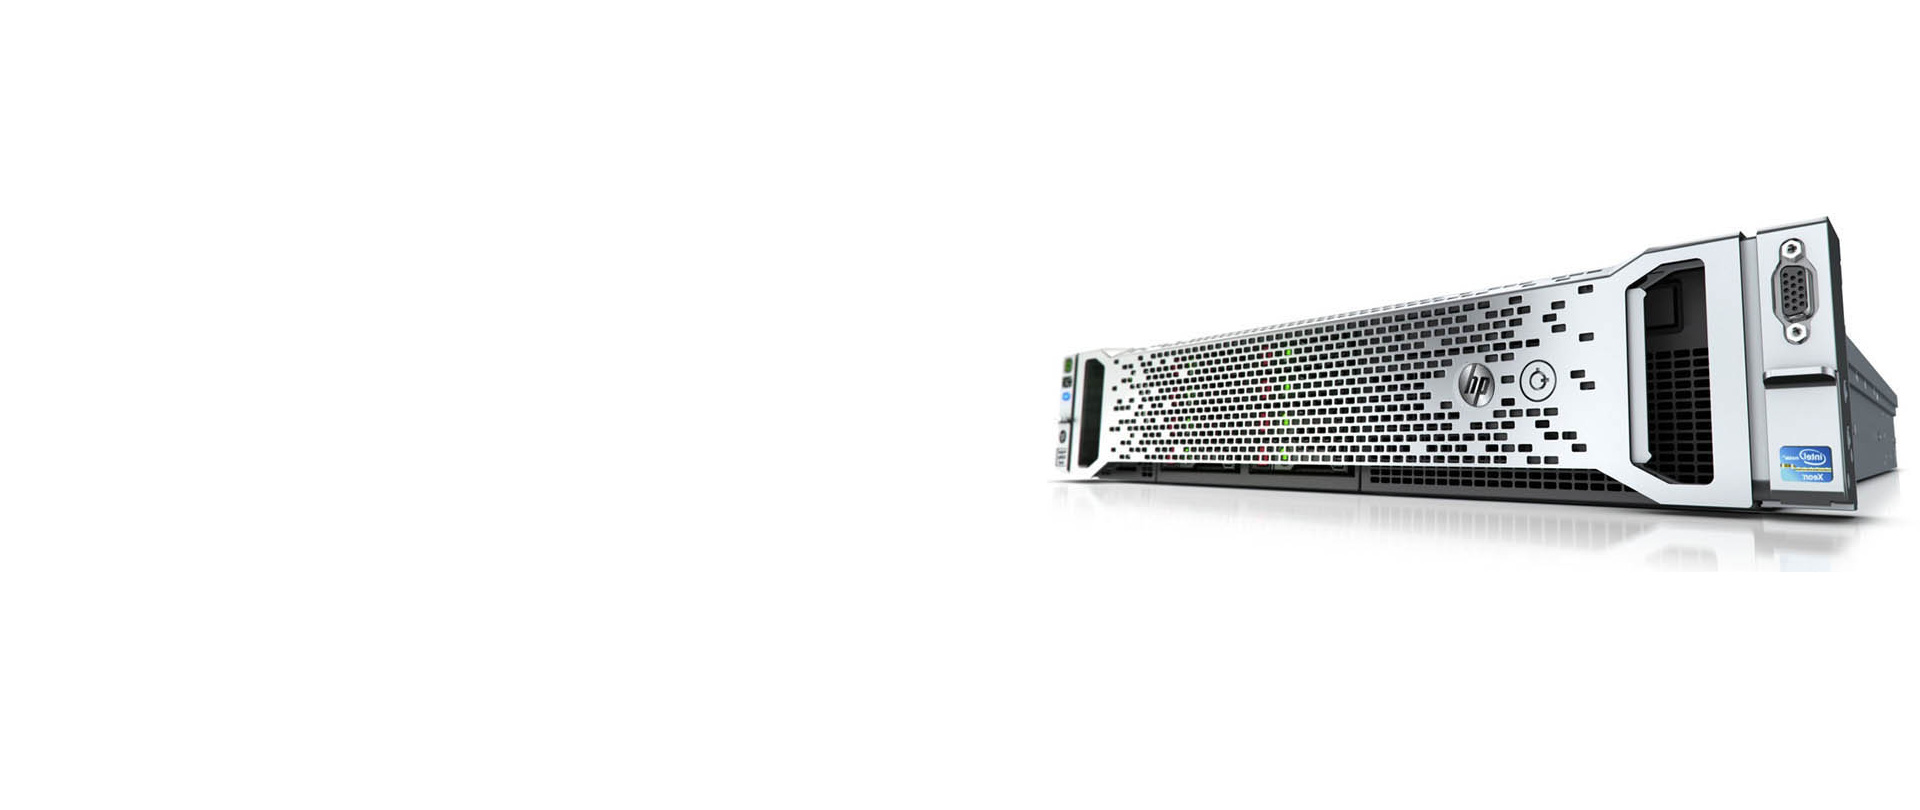 HP Proliant  DL380 Gen10 Server